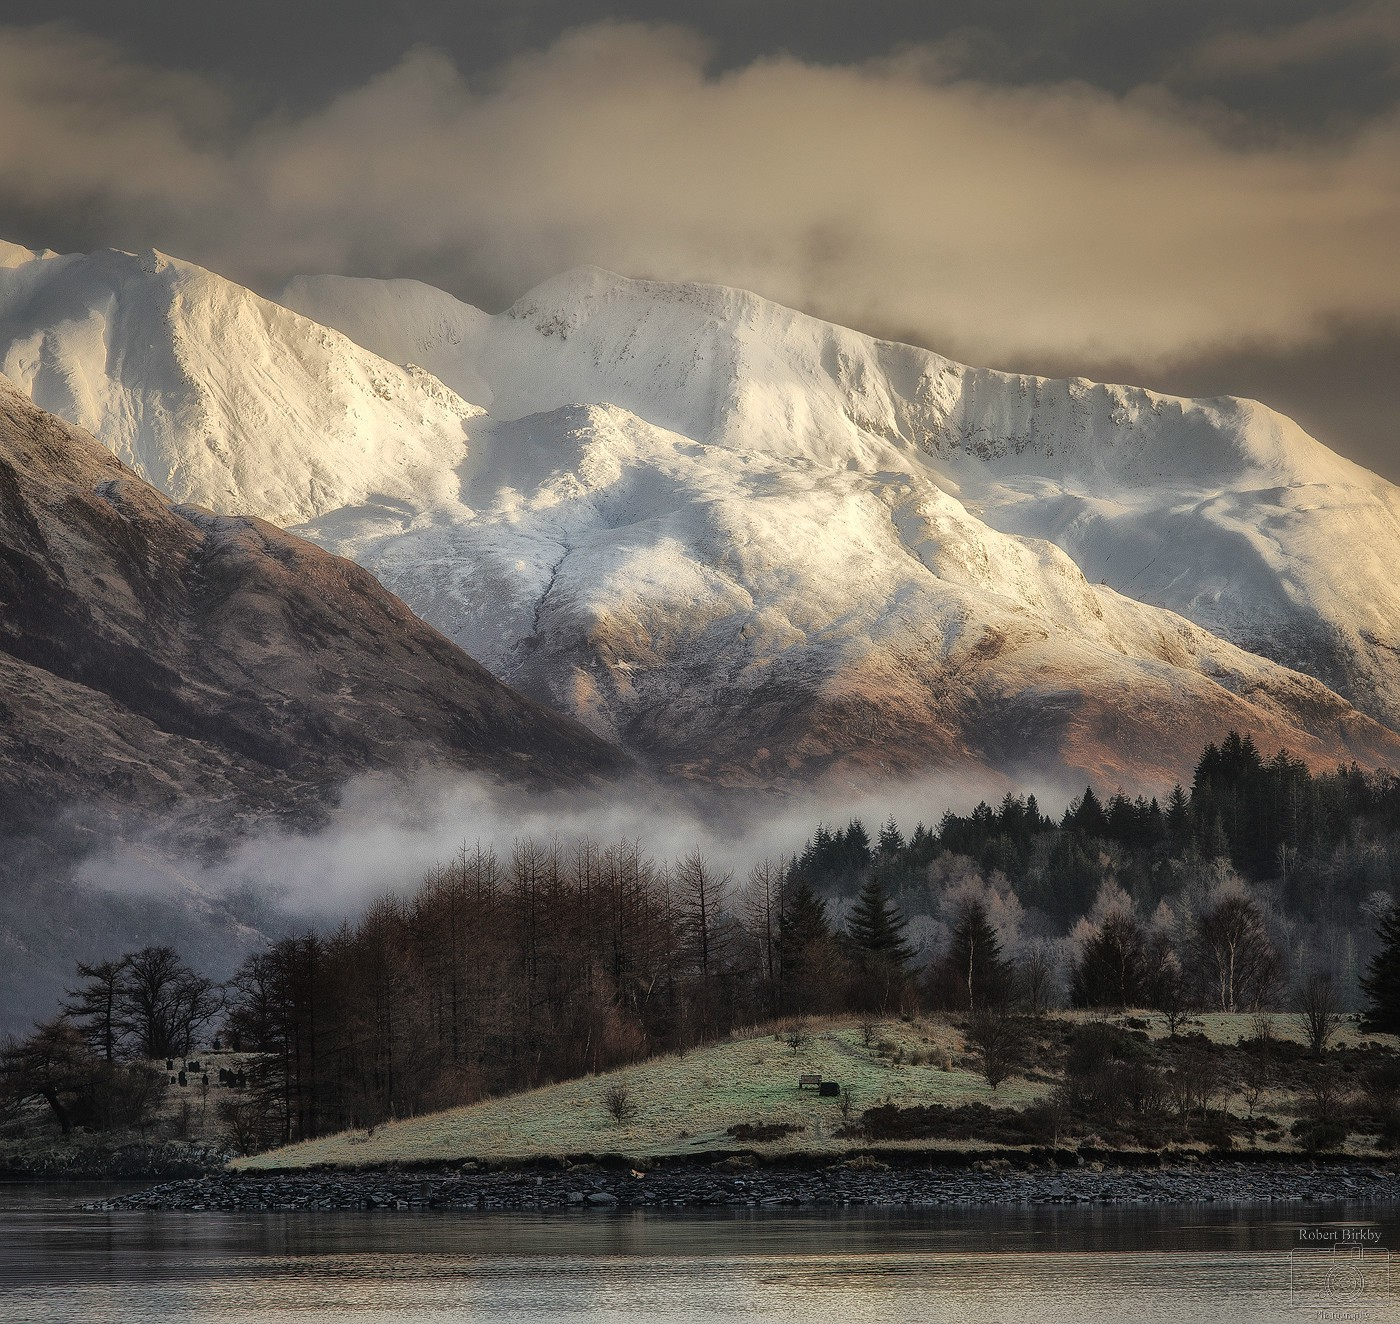 Lochaber Light - Scotland Landscapes (also see Seascapes portfolio)